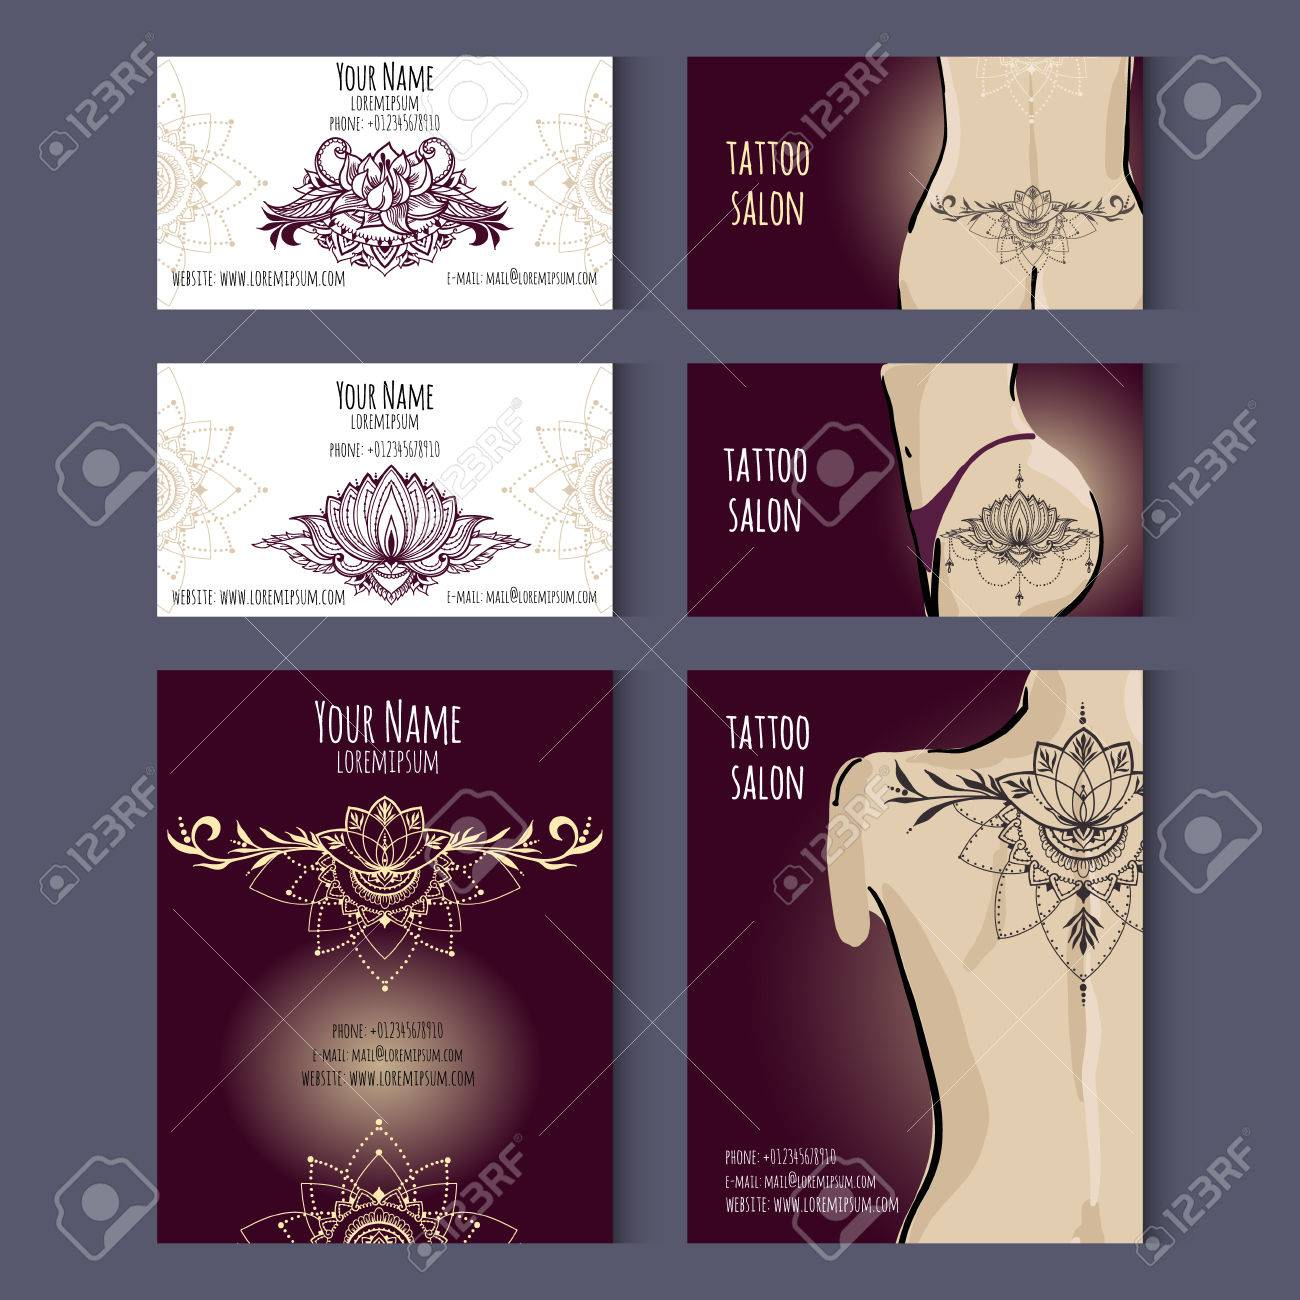 Set Of Business Cards Templates For Tattoo Salon Or Invitation ...